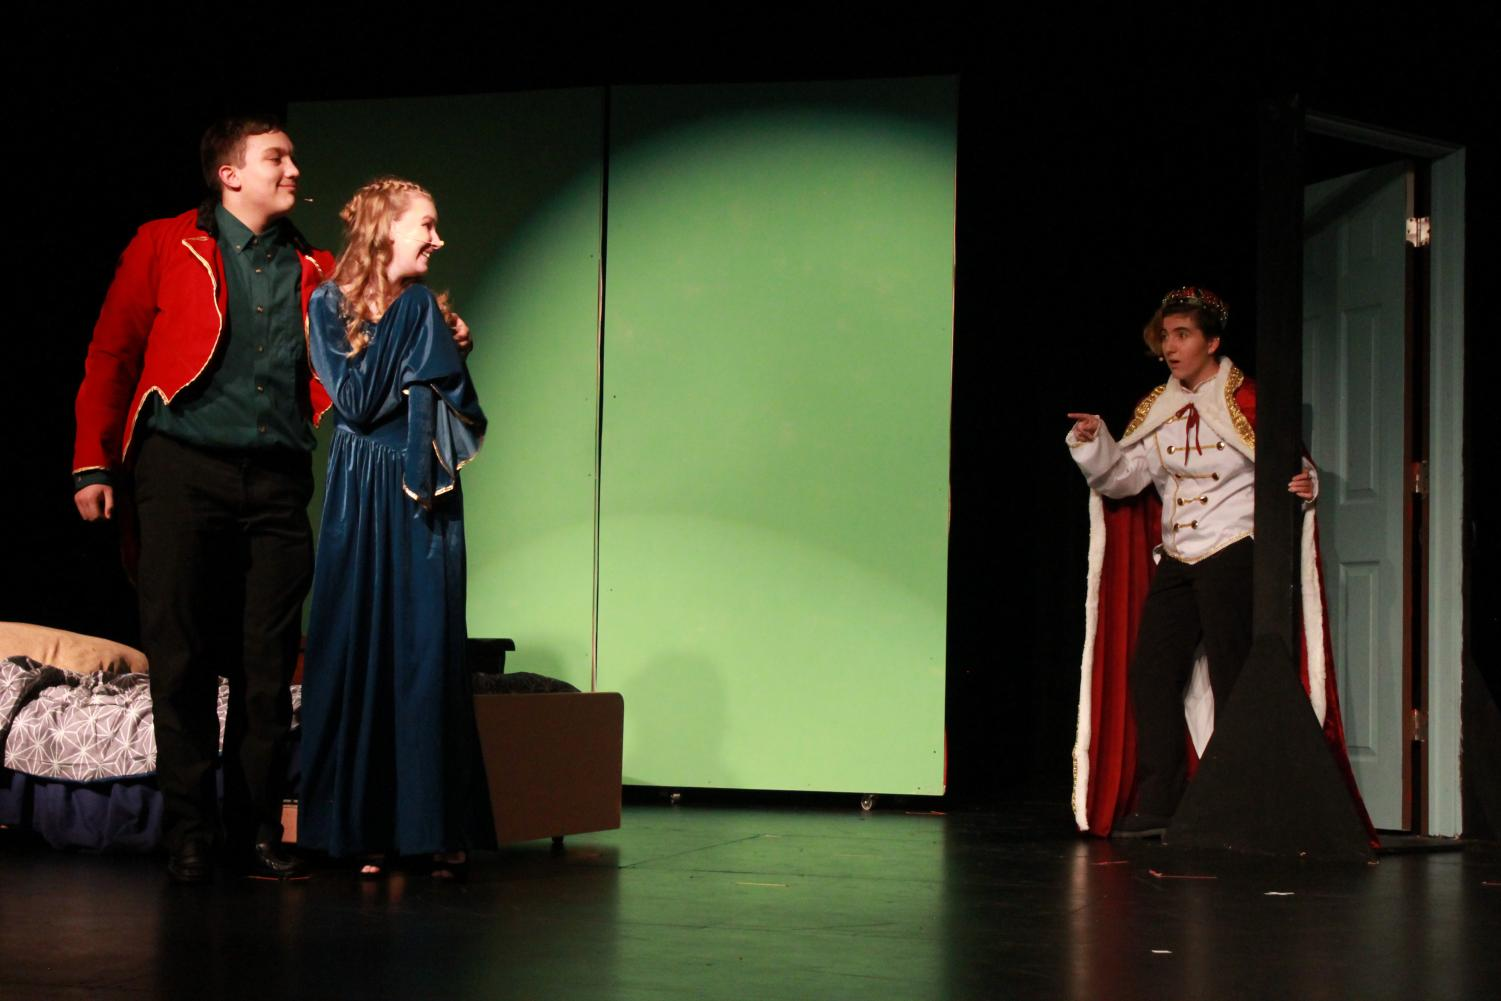 Juniors Ali Jawad, Morgan Nugent and Dez Lacourse portraying the Frog Prince, Princess and King, respectively. PARKER HOPKINS PHOTO